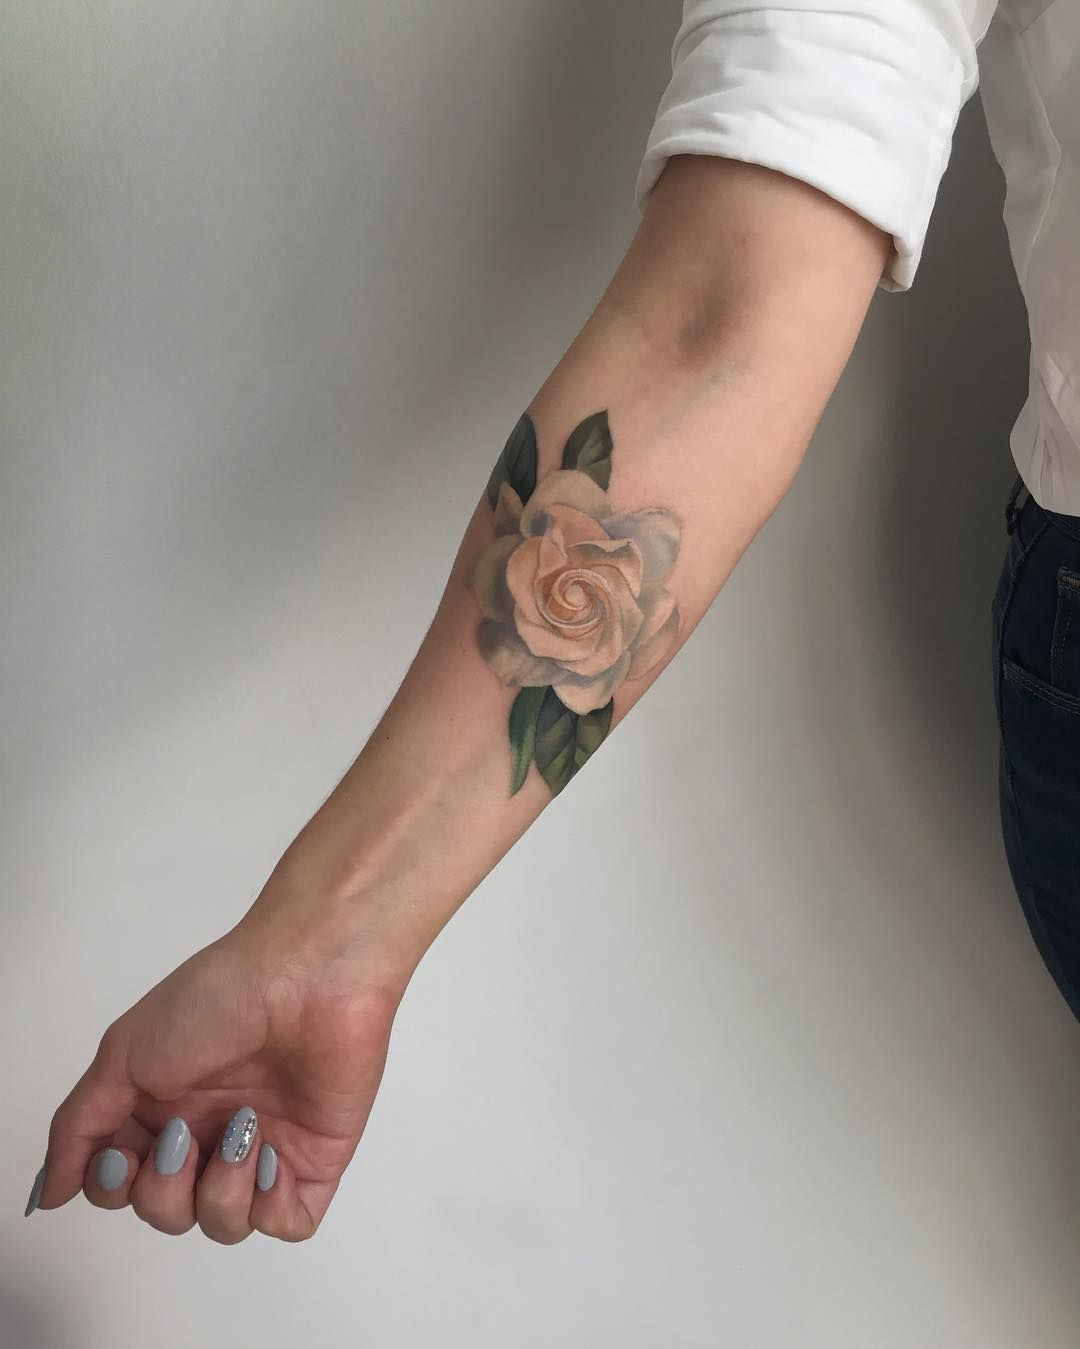 27 Inspiring Rose Tattoos Designs Tattoos White Rose Tattoos